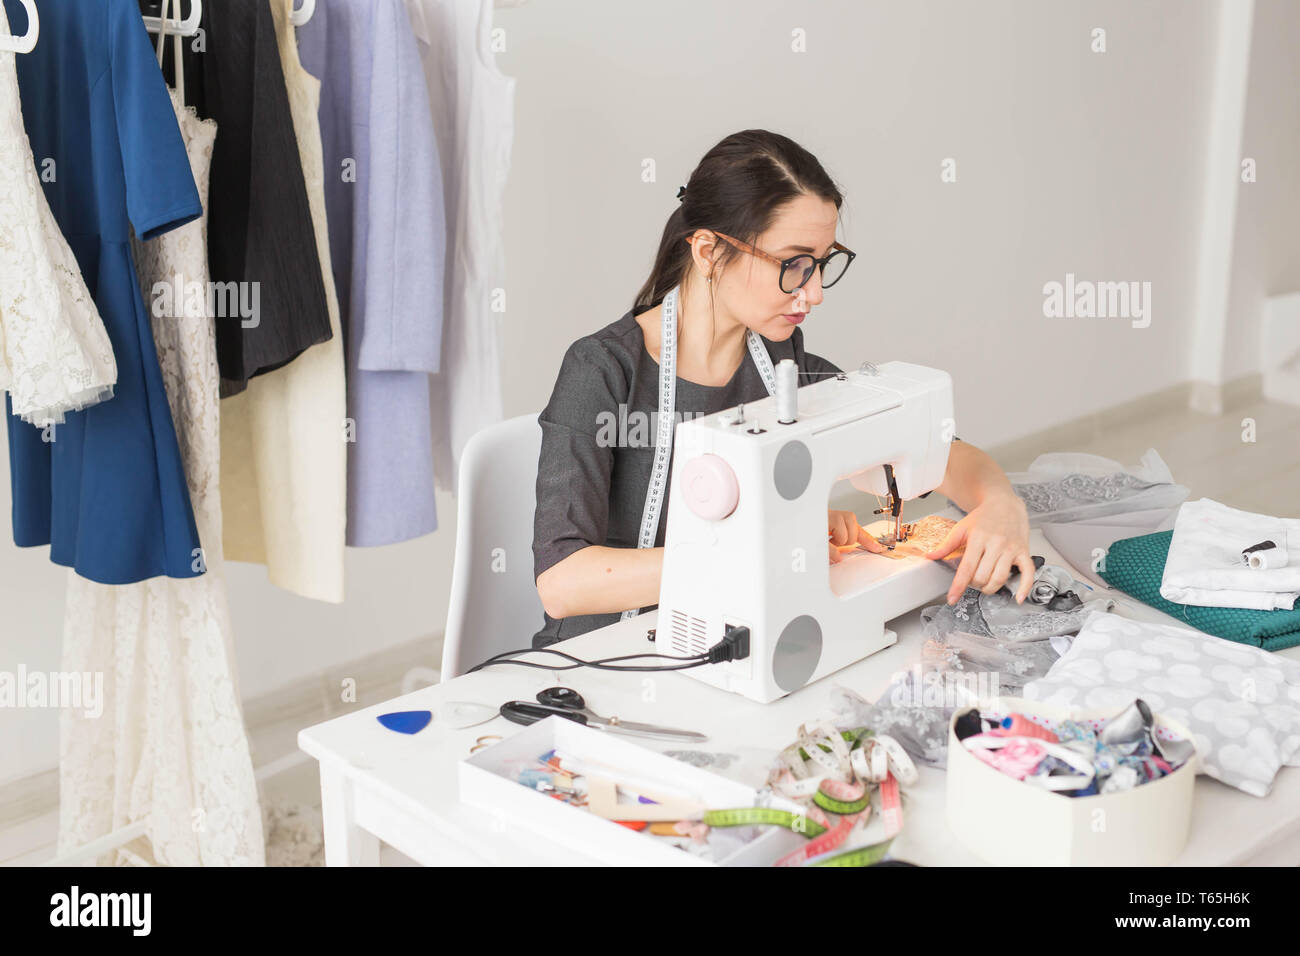 Dressmaker Tailor Works And Seamstress Concept High Angle View Portrait Of Smiling Fashion Designer In Glasses Using Sewing Machine Stock Photo Alamy